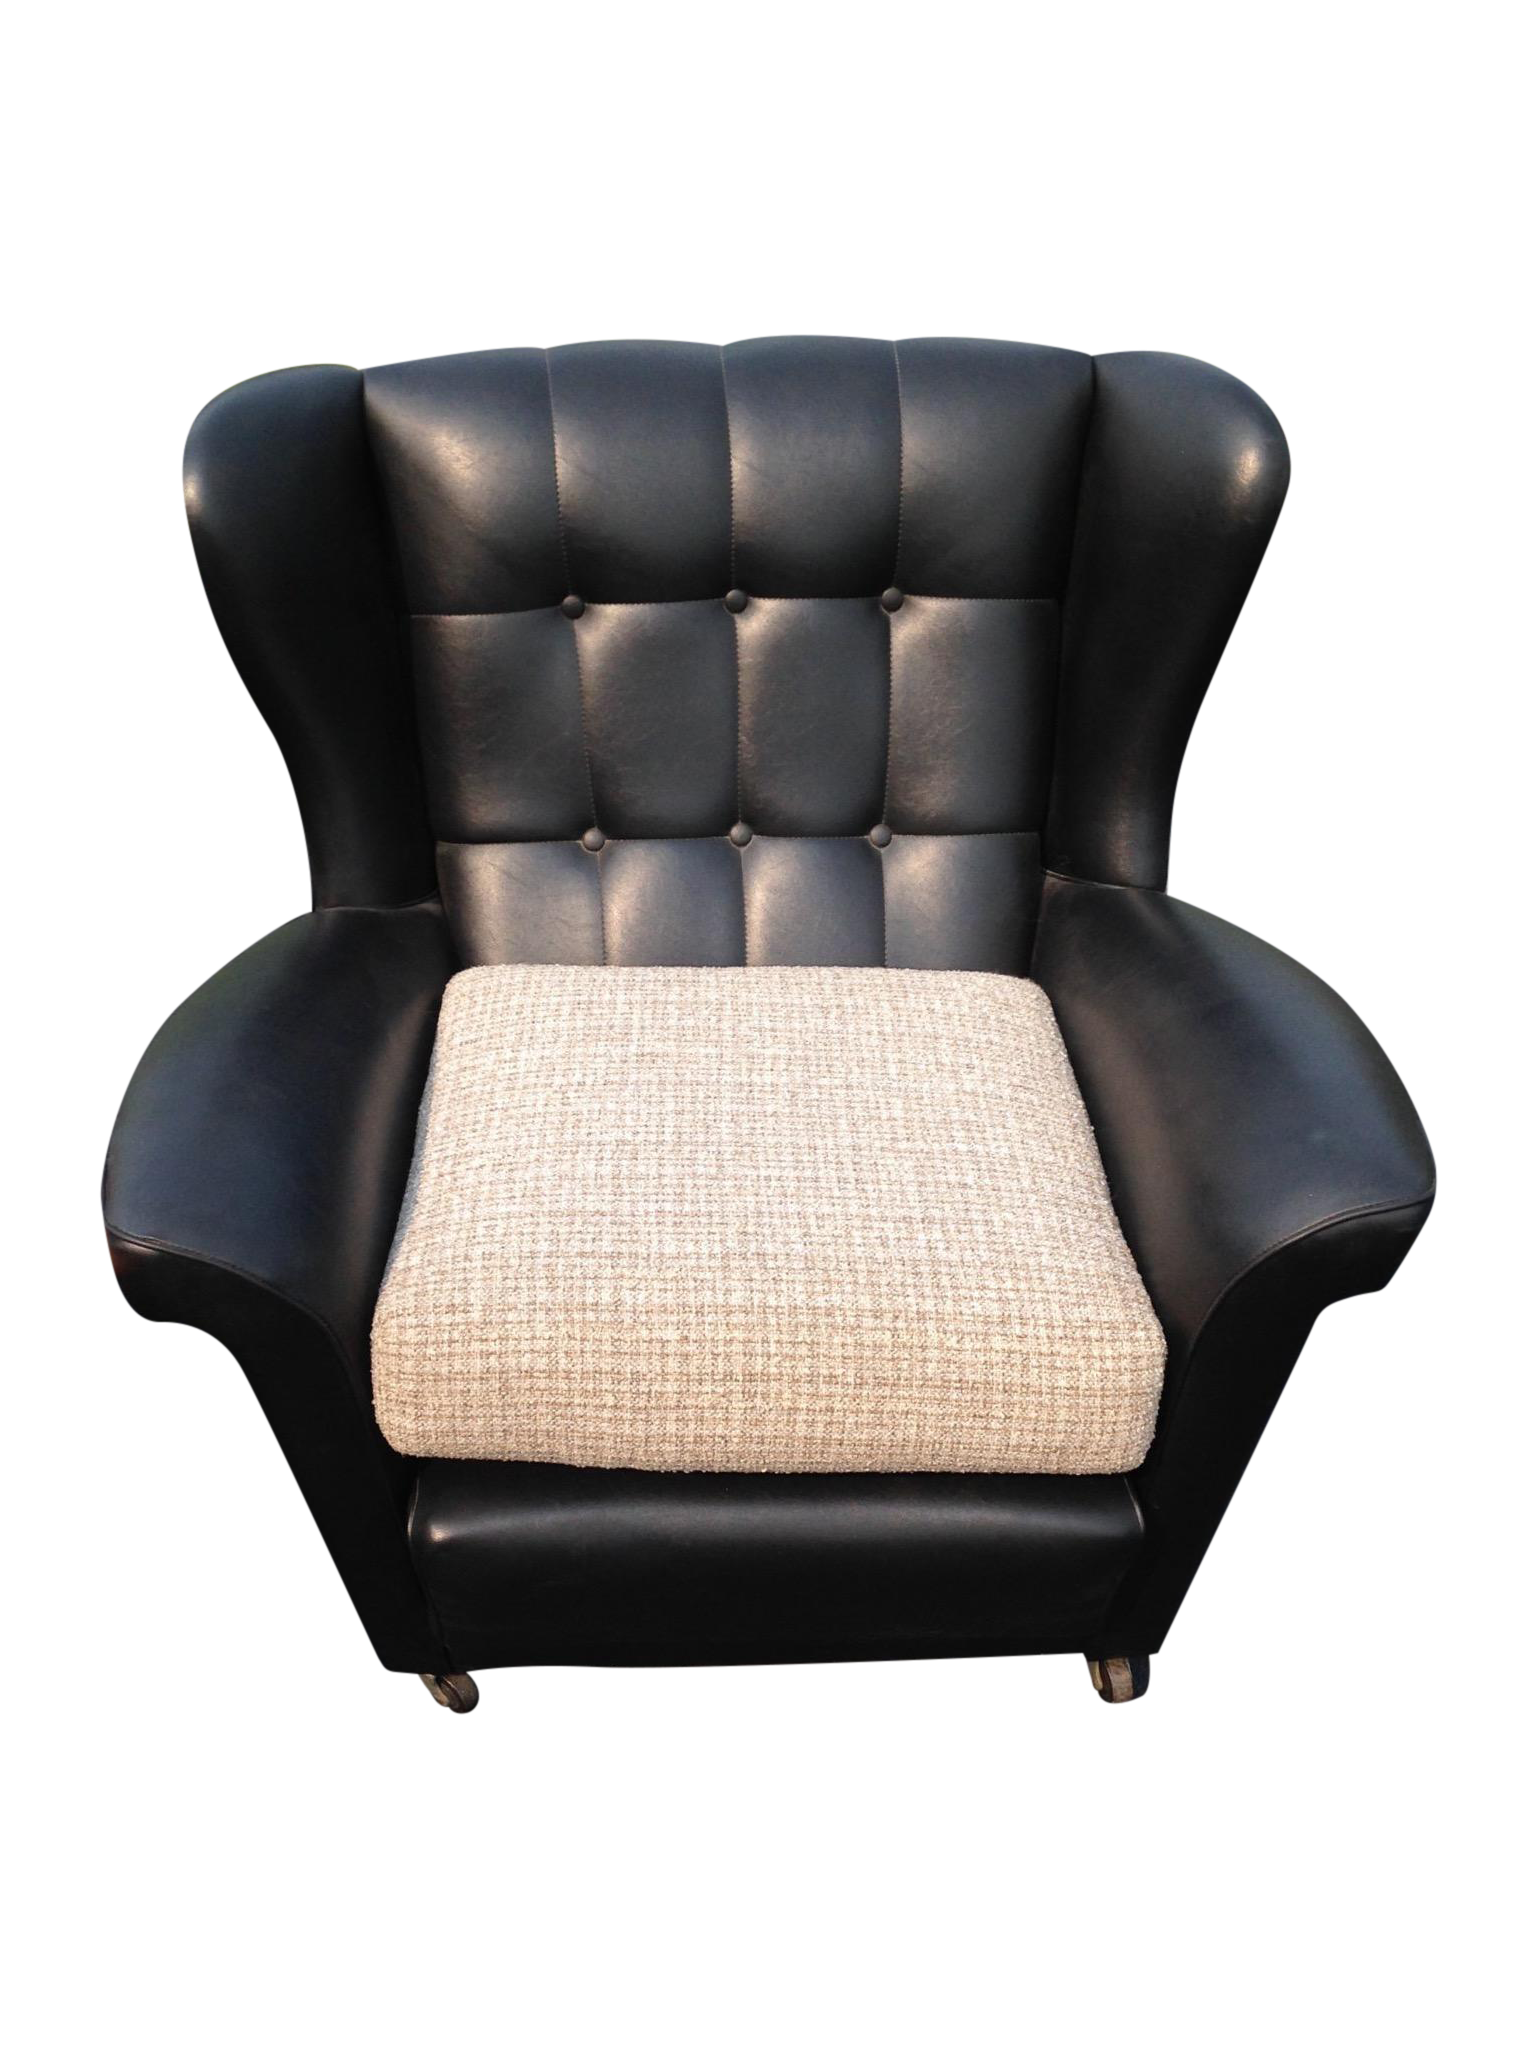 This mid century tufted club chairs is no longer available - Image Of Mid Century Tufted Black Vinyl Club Chair Pair